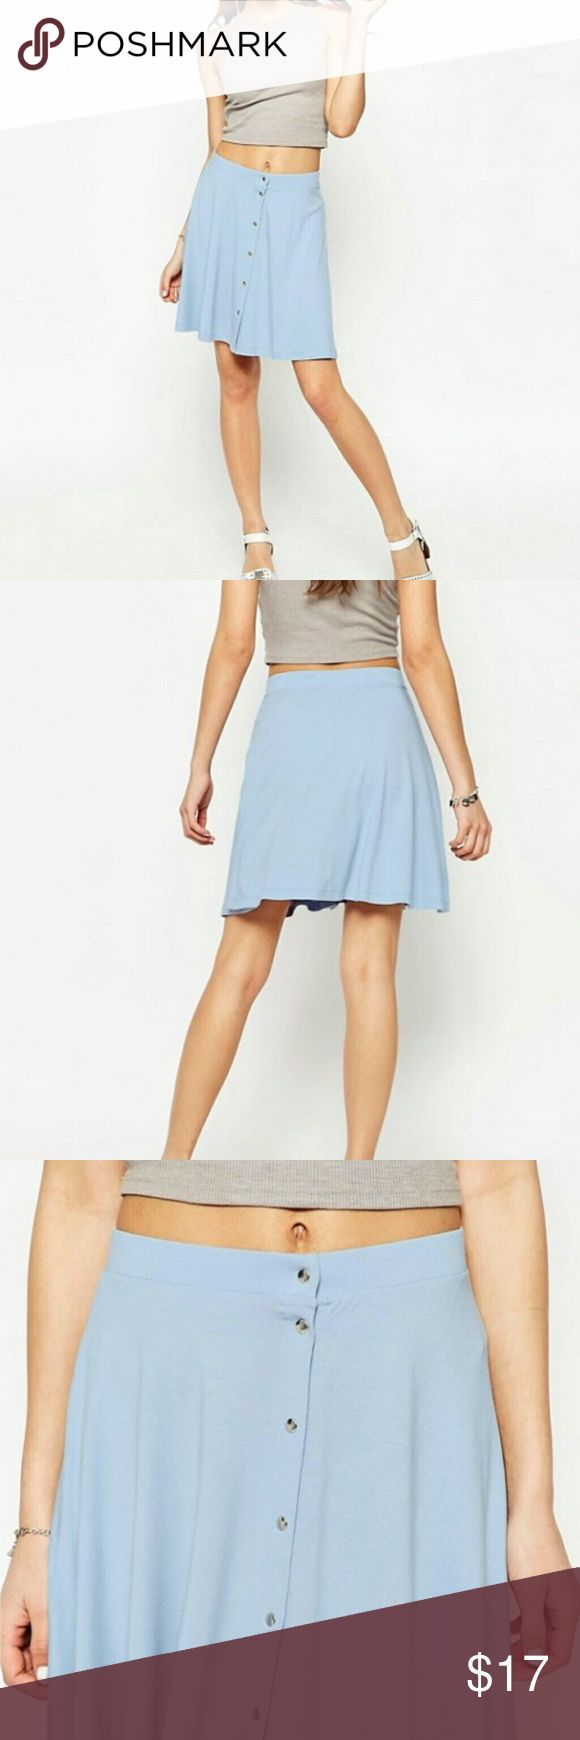 Asos skirt Super cute flowy light blue skirt from ASOS. It has 6 buttons on the front. Can be paired with a cute tank,plain tank , or a nice tee. Simple and girly~<3 UK 8,US4 I think it'll fit like a small. Measurements: waist-13(but can stretch up to 16-ish) length -18in 95%viscose 5%elastane NEW WITH TAGS ASOS Skirts Mini